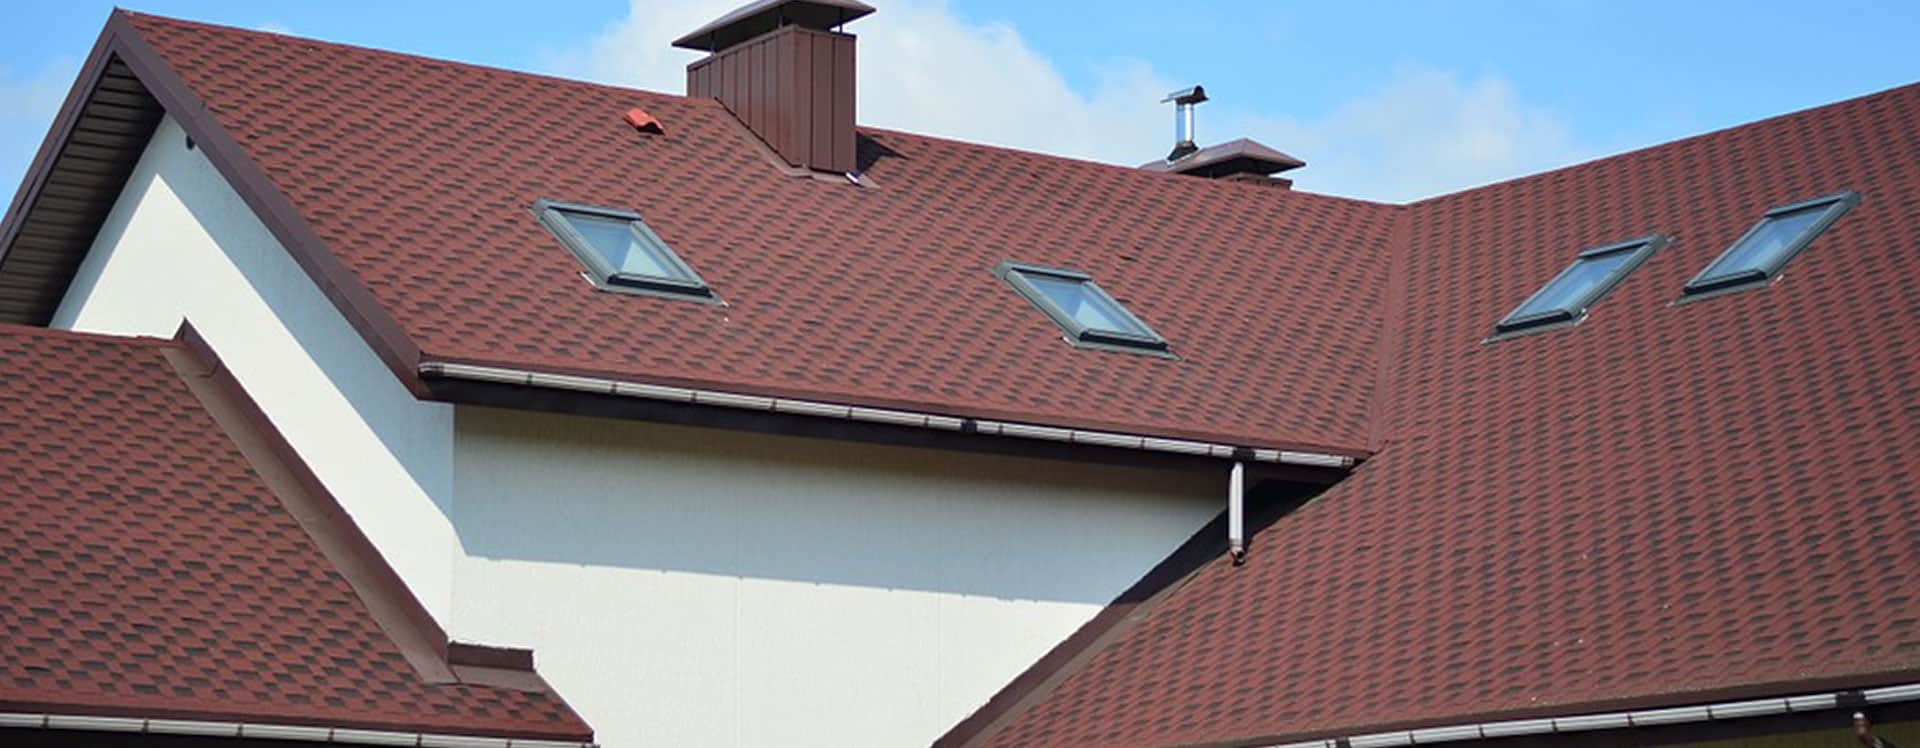 new roof for your home